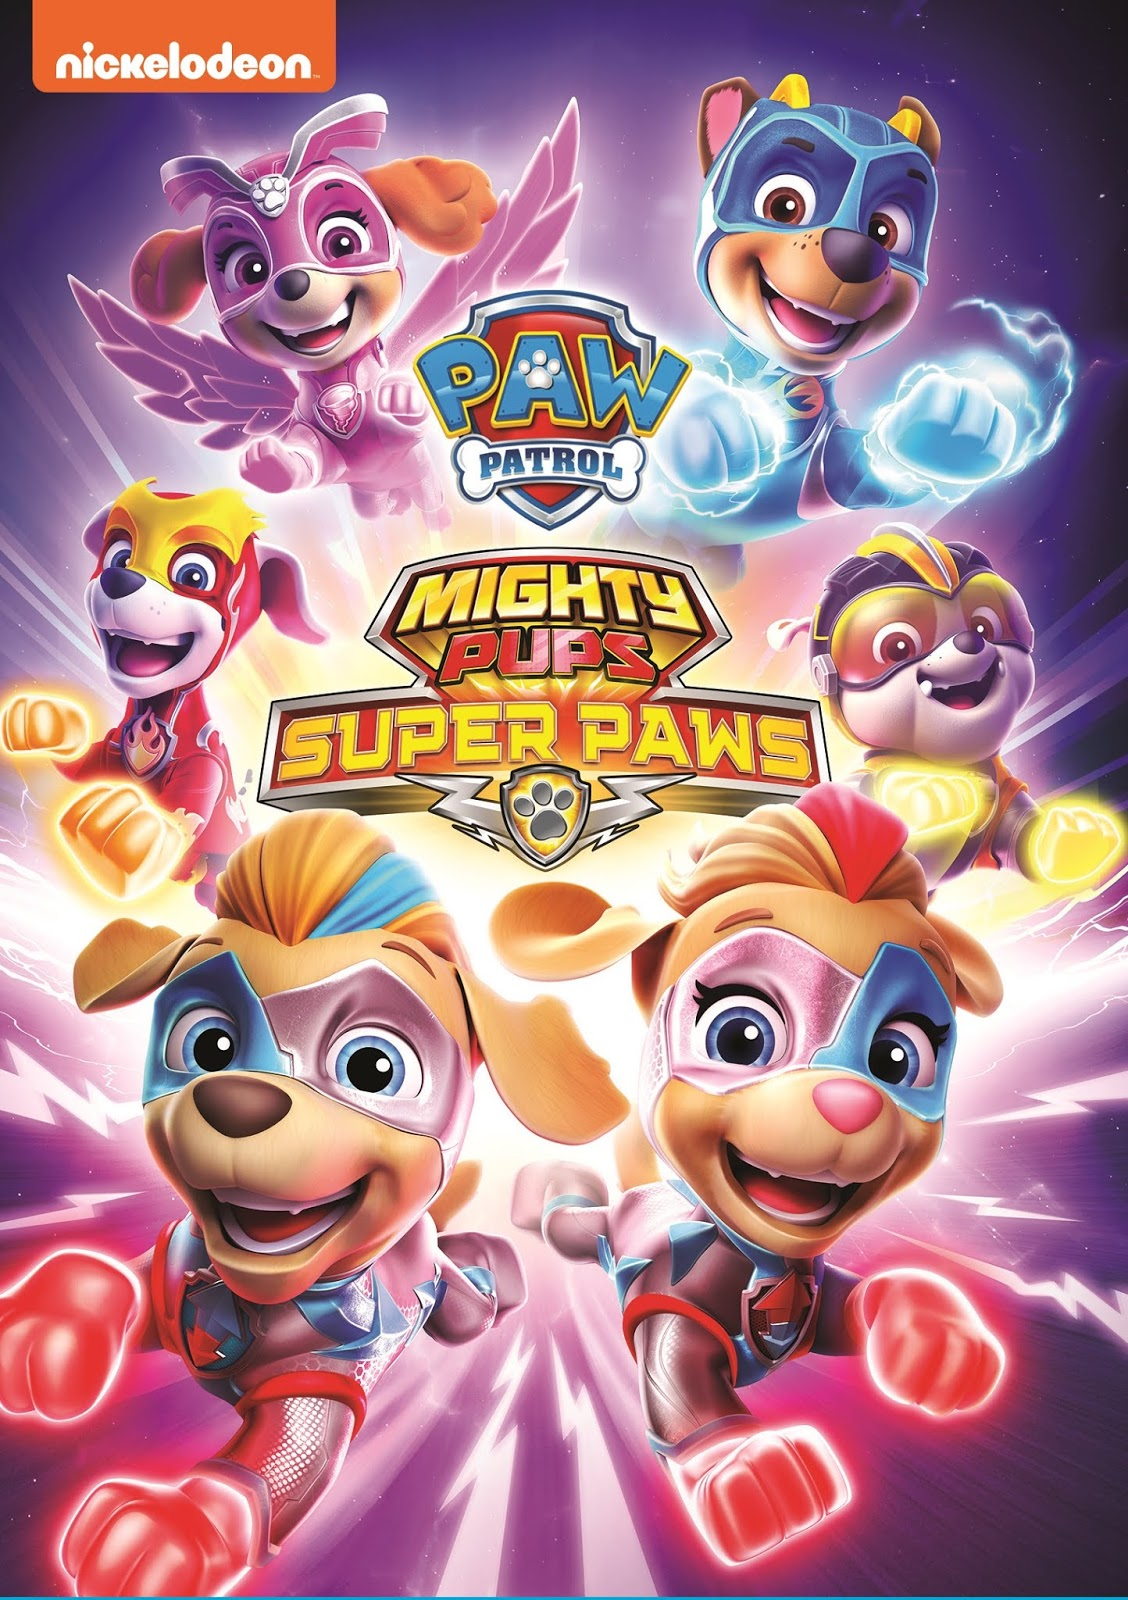 Paw Patrol: Mighty Pups – Super Paws [2020] [DVDR] [NTSC] [Latino]